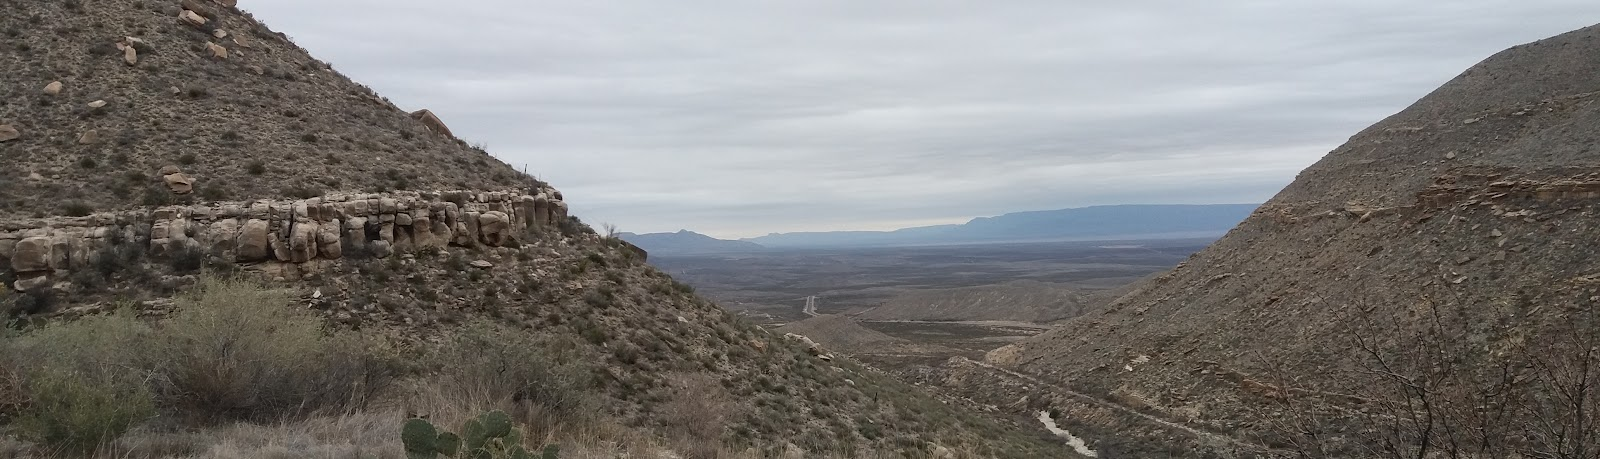 Cycling Guadalupe Mountains, roadway, plains and canyon